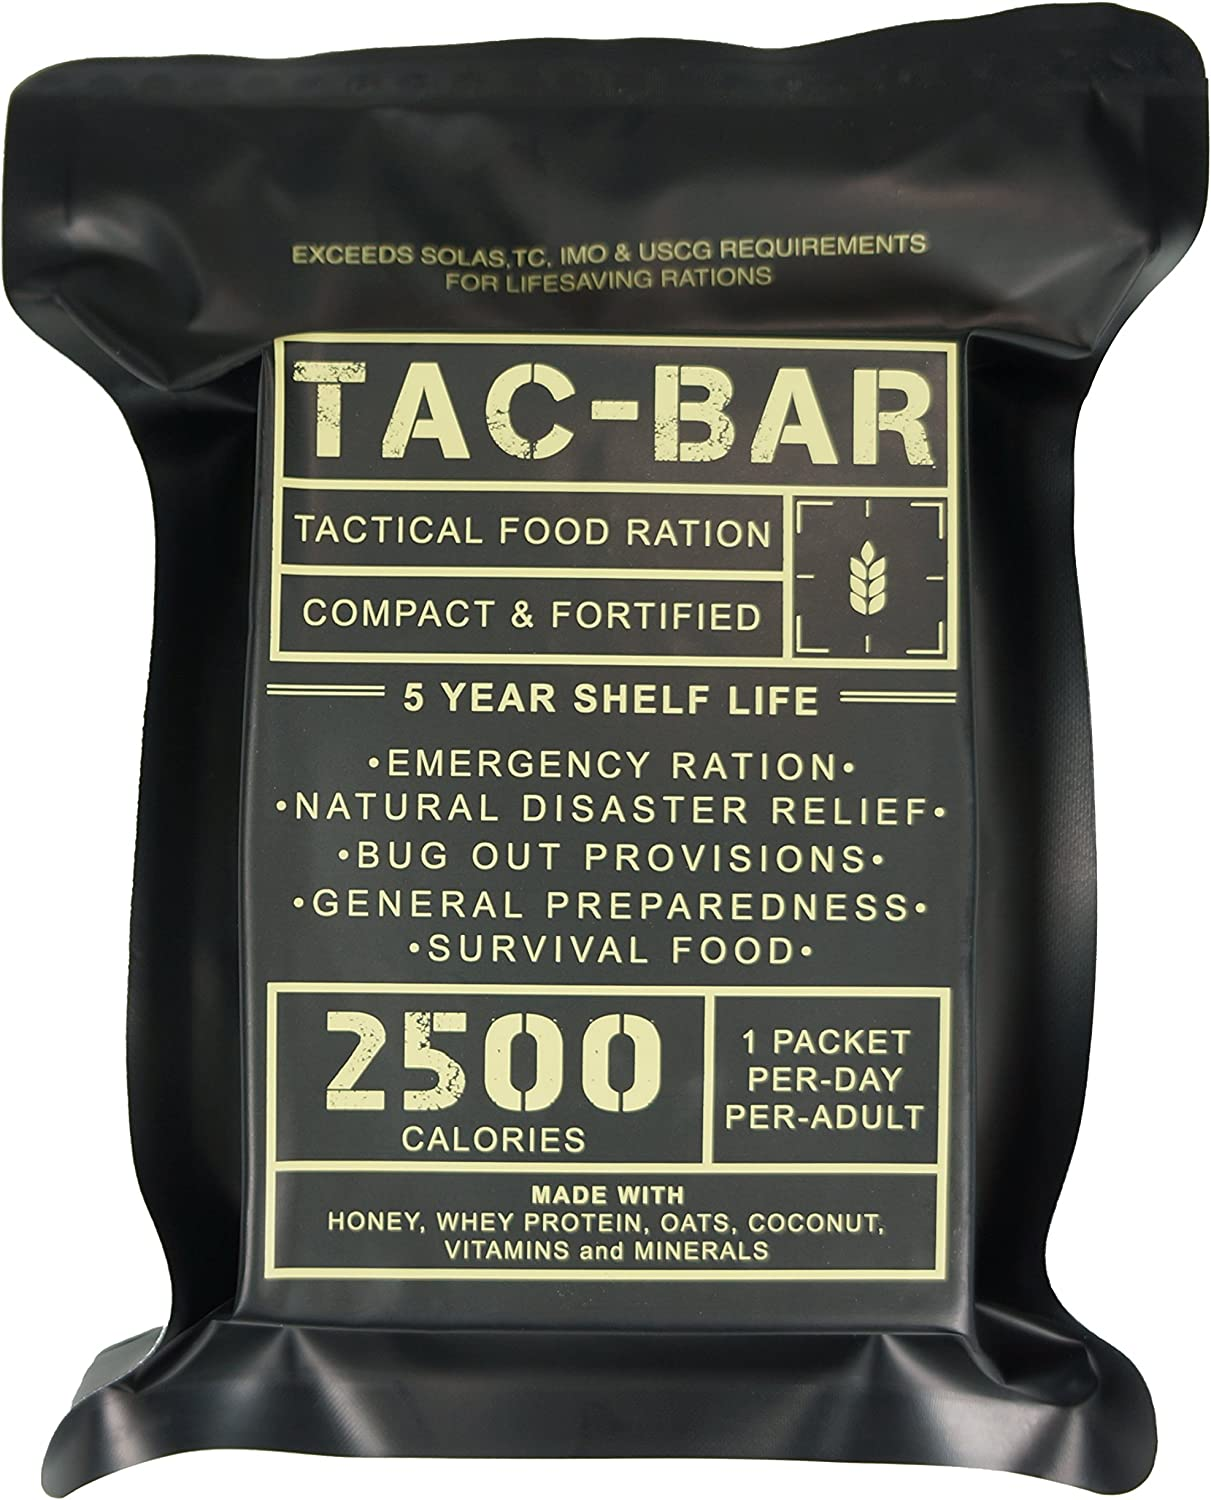 Image of a pouch containing ready to eat meal.